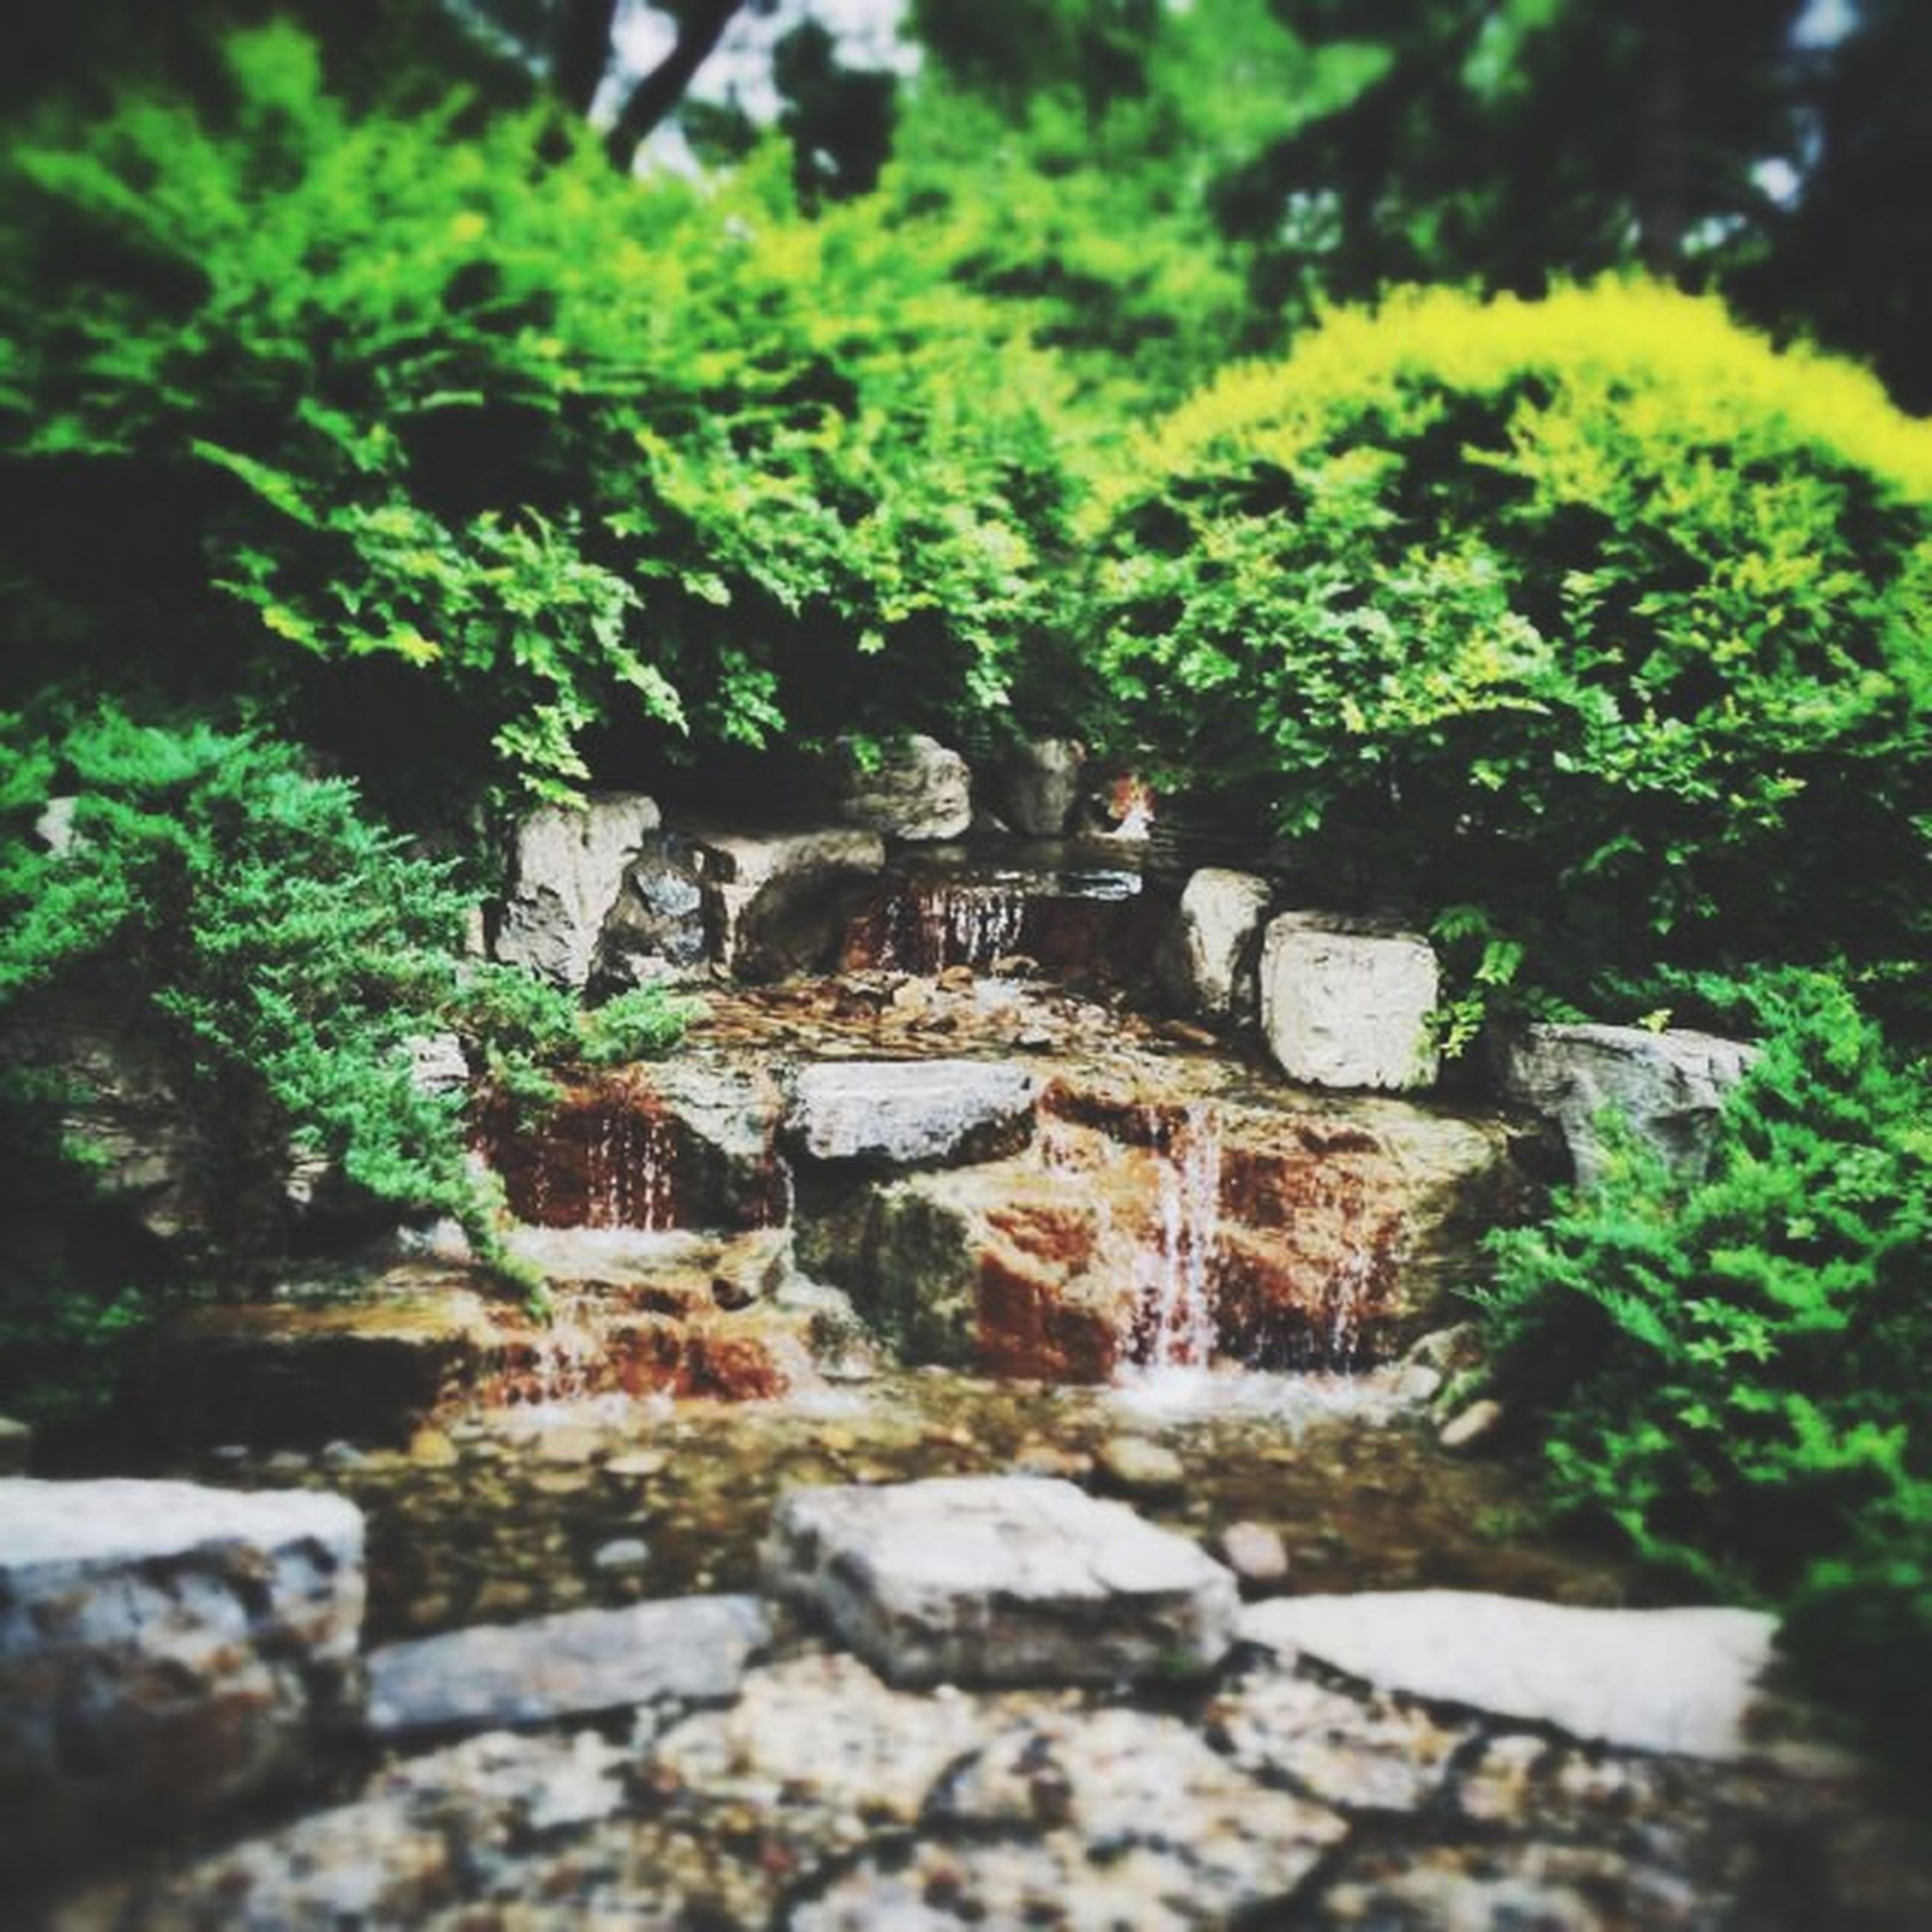 growth, plant, tree, rock - object, green color, moss, nature, selective focus, leaf, forest, outdoors, no people, day, beauty in nature, tranquility, stone - object, stream, rock, growing, water